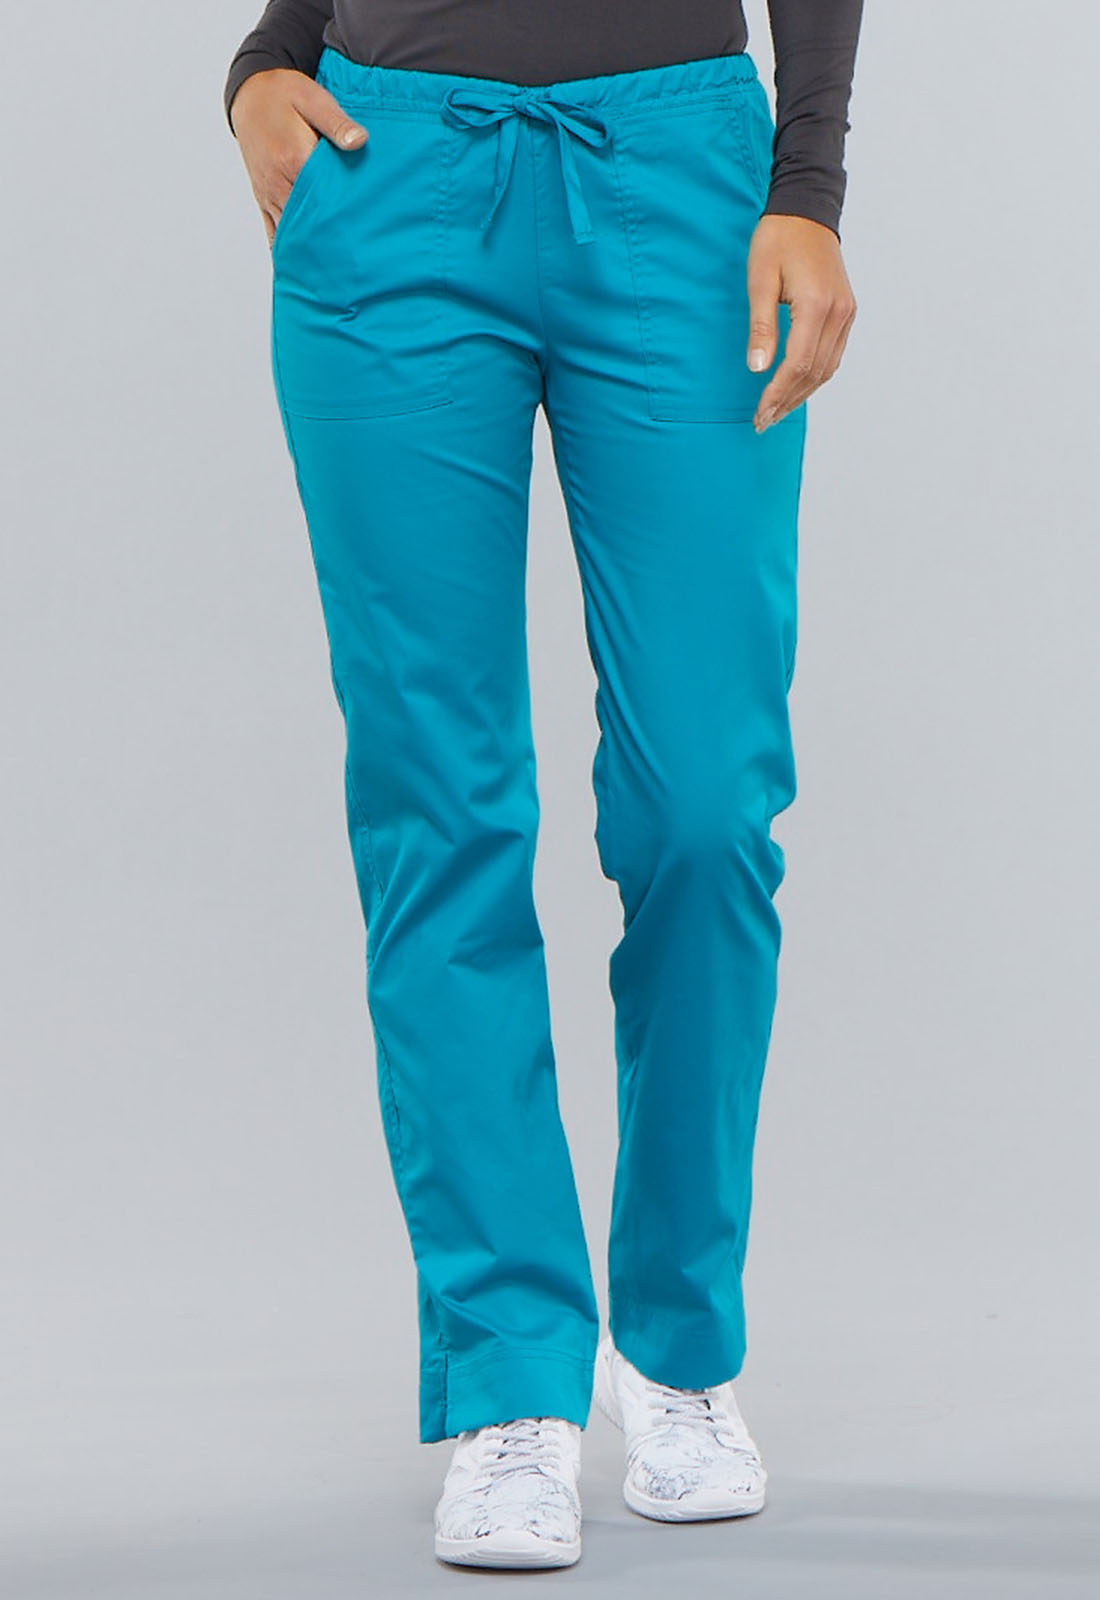 5839dc20a89 WW Core Stretch Mid Rise Straight Leg Drawstring Pant in Teal Blue (Petite)